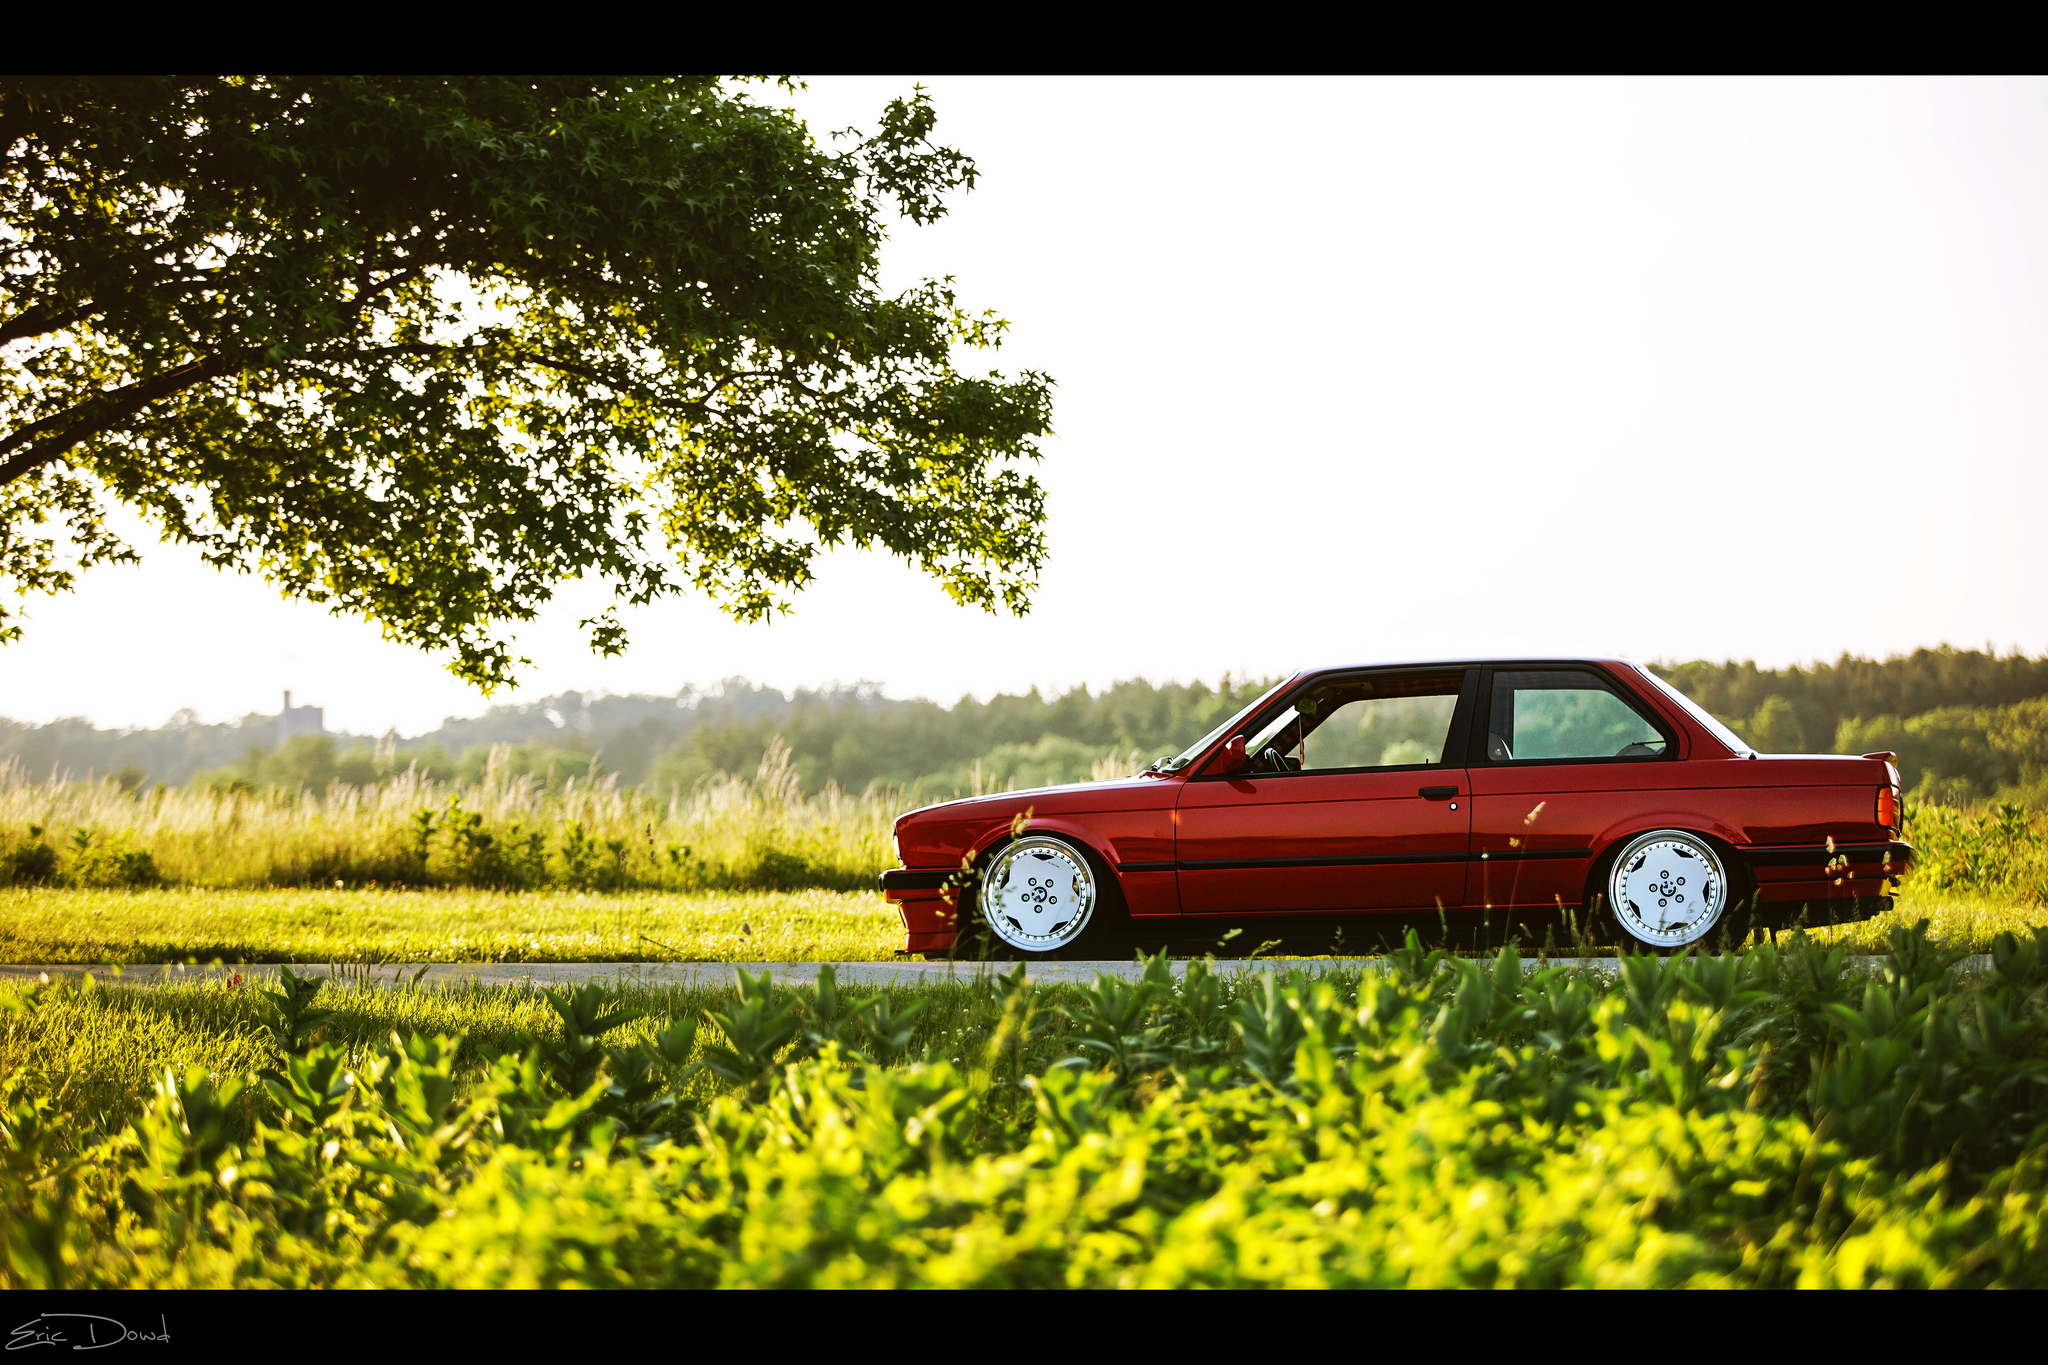 Awesome Photo Awesome Bmw E30 Stancenation Form